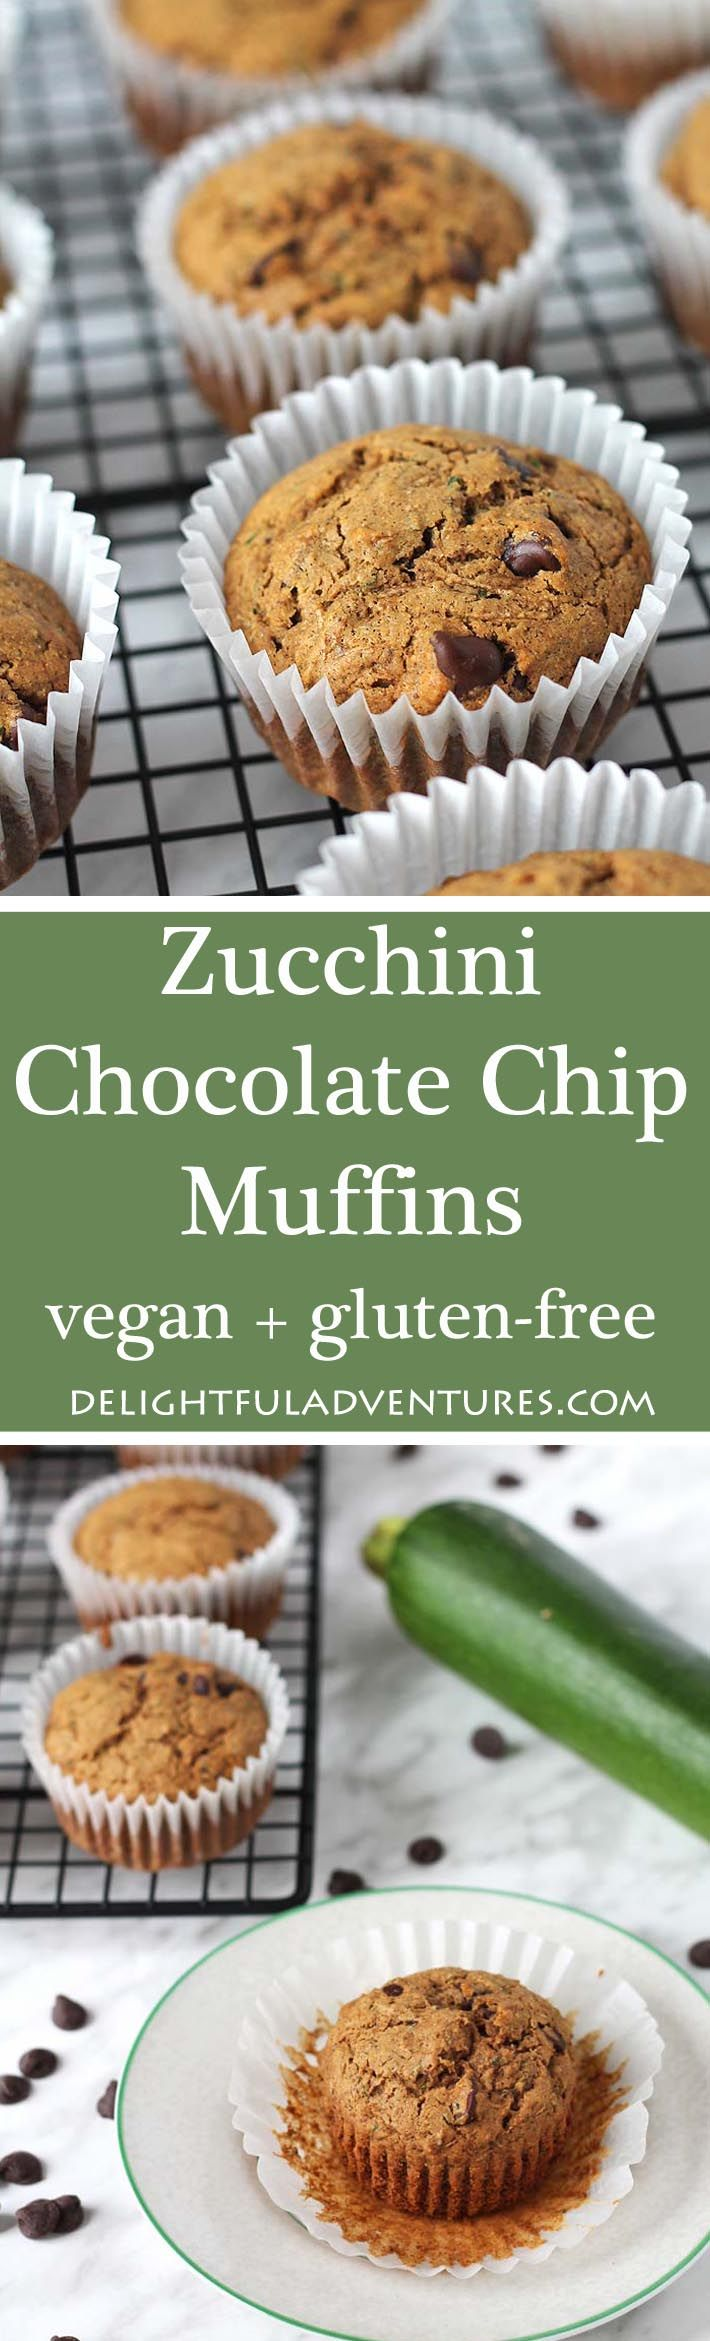 These delicious and easy-to-make vegan gluten free zucchini chocolate chip muffins are perfect for school snacks or for snacking on at home! via @delighfuladv